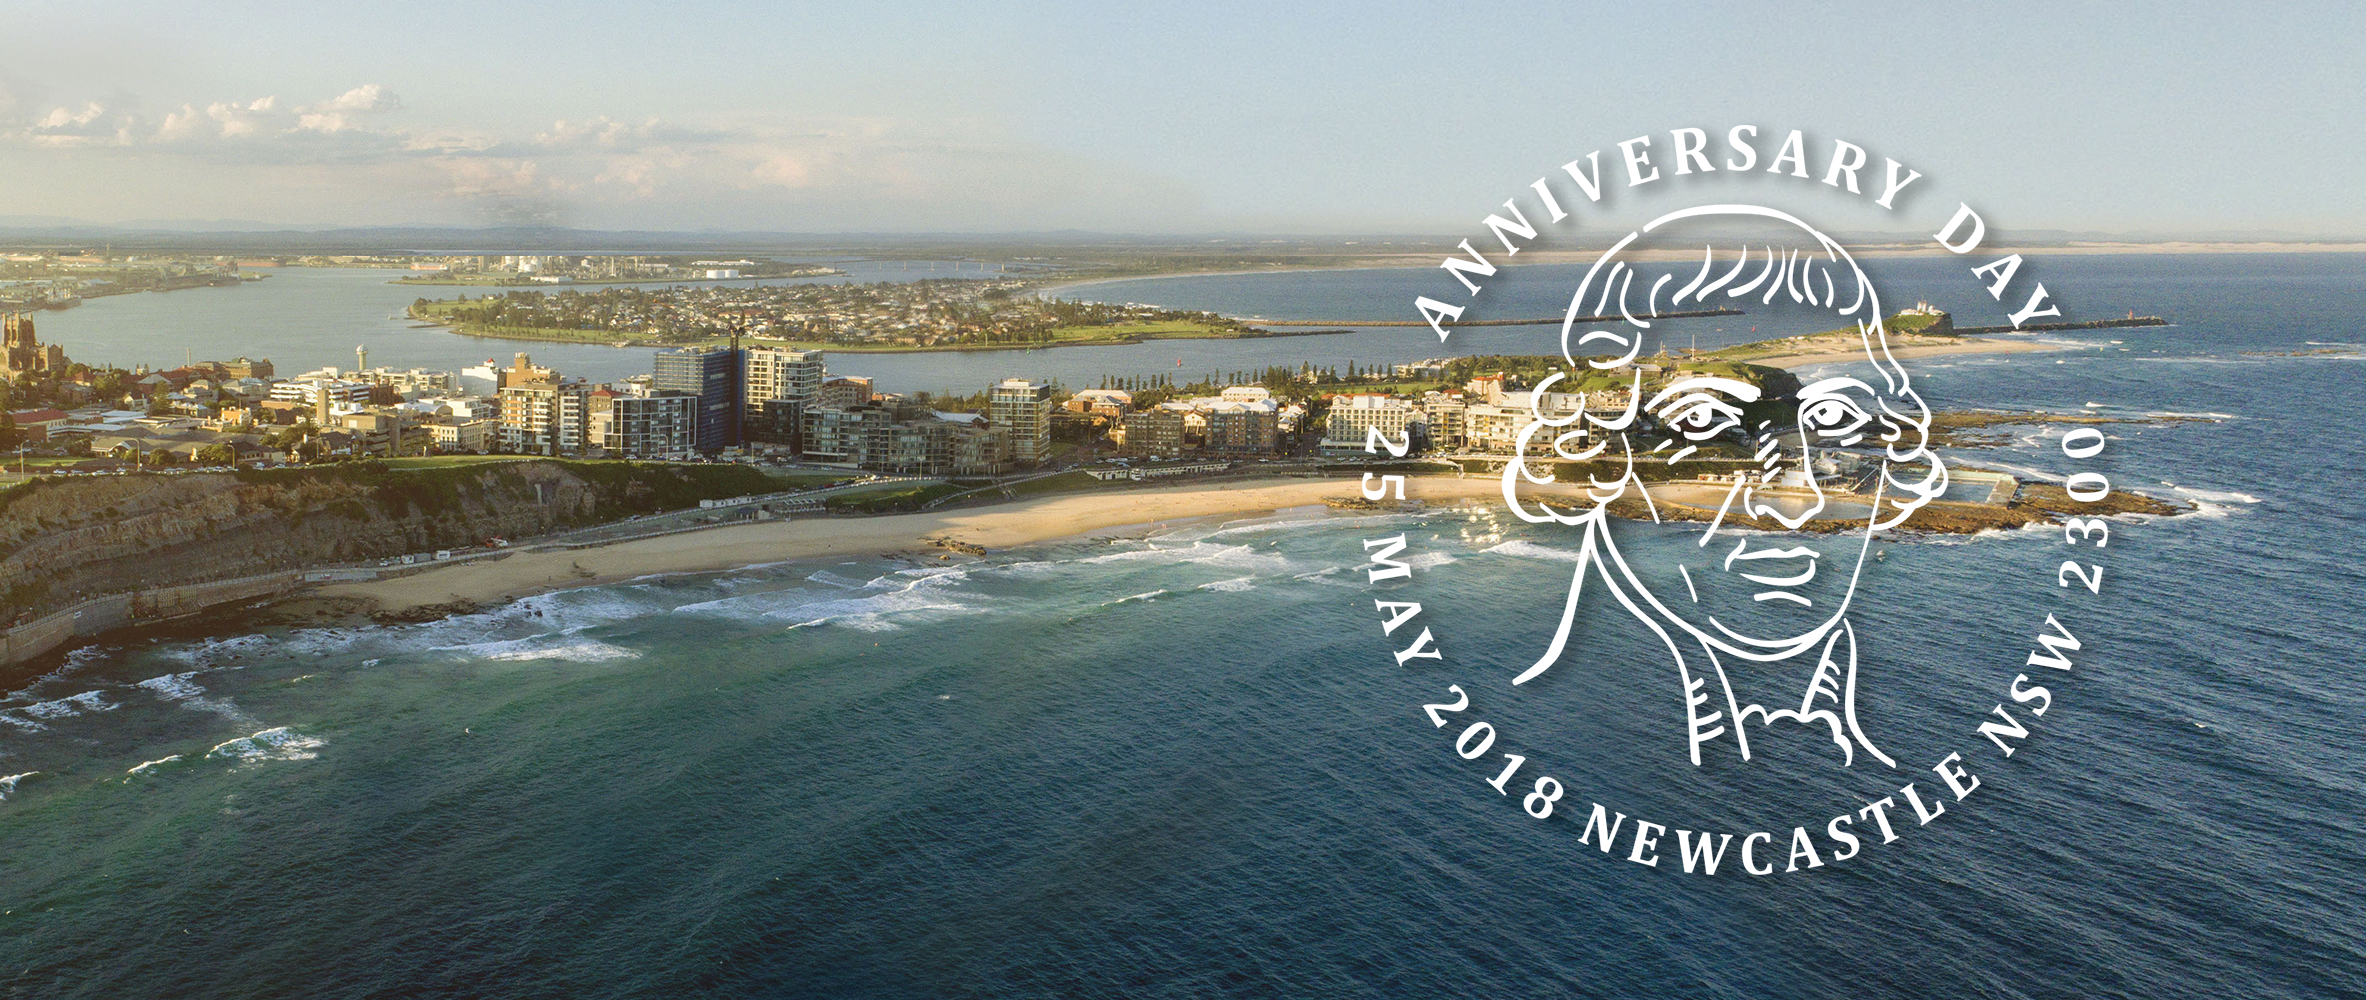 Visit us at the 2018 Newcastle Stamp and Coin Expo